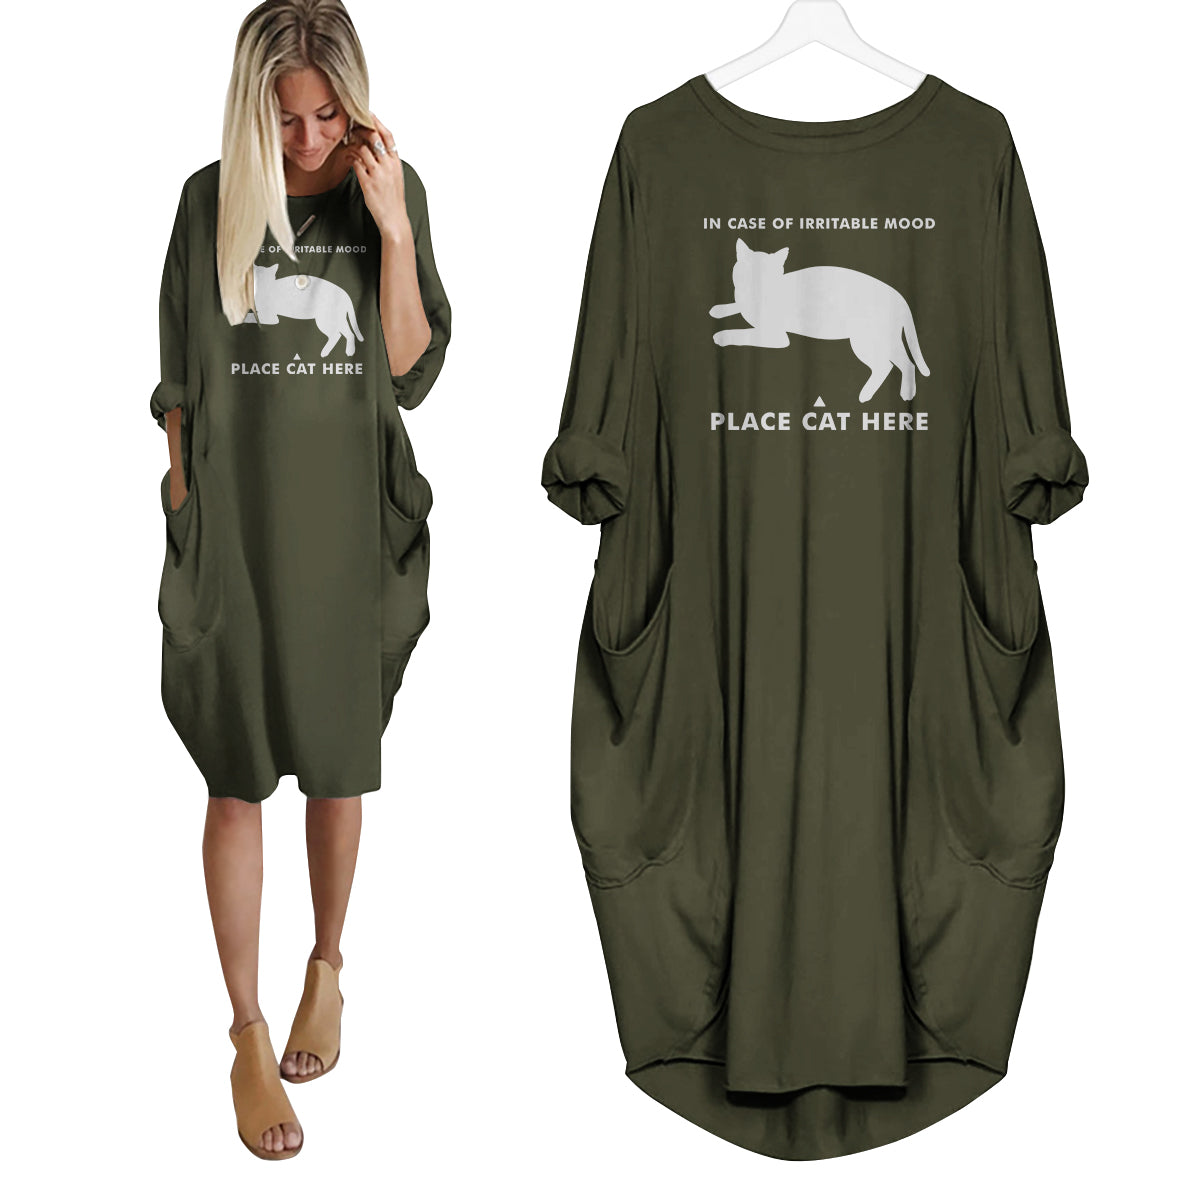 Place Cat Here Dress